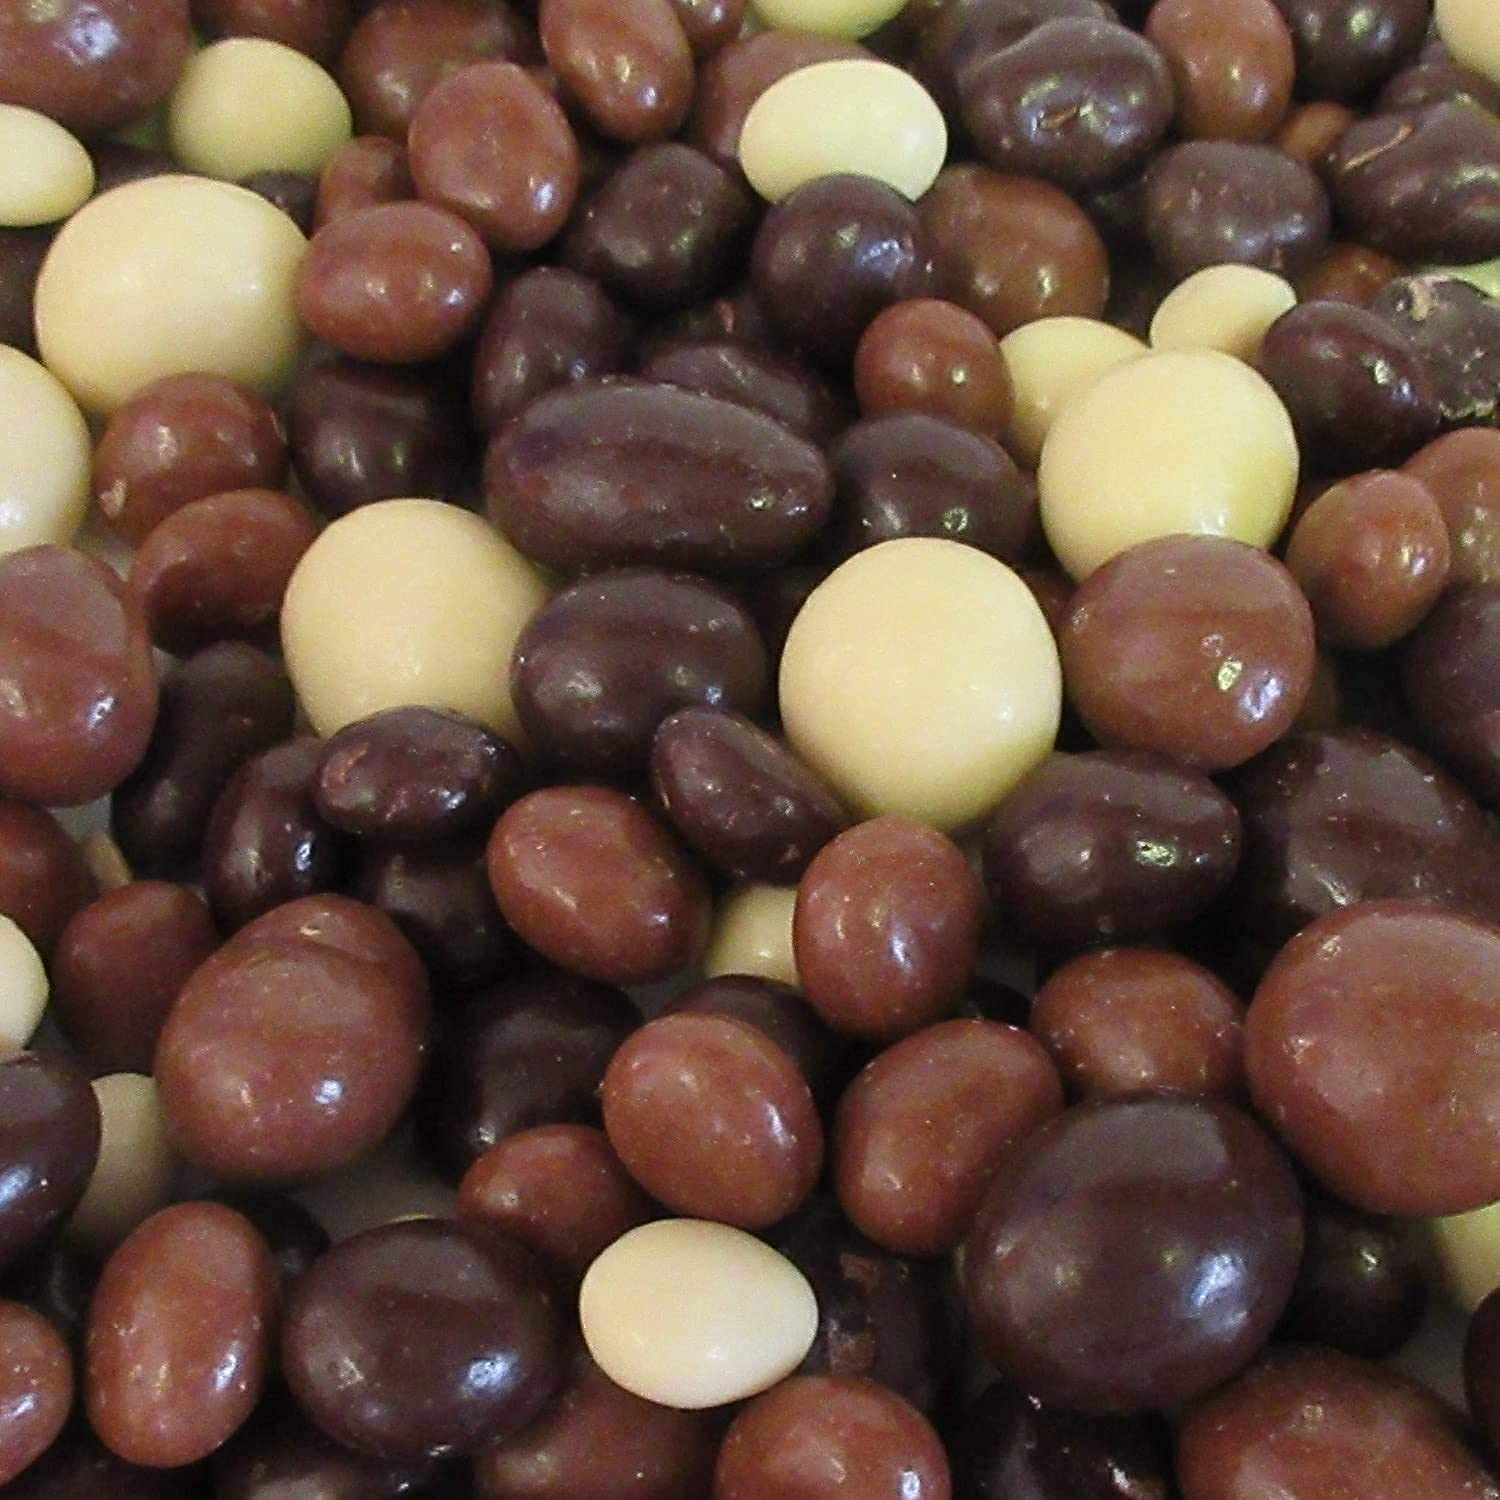 Gourmet Chocolate Covered Espresso Beans Medley by Its Delish – 5 LBS Bulk Bag – Premium Kosher Dairy Mix of Dark, Milk & White Chocolate Covered Coffee Beans